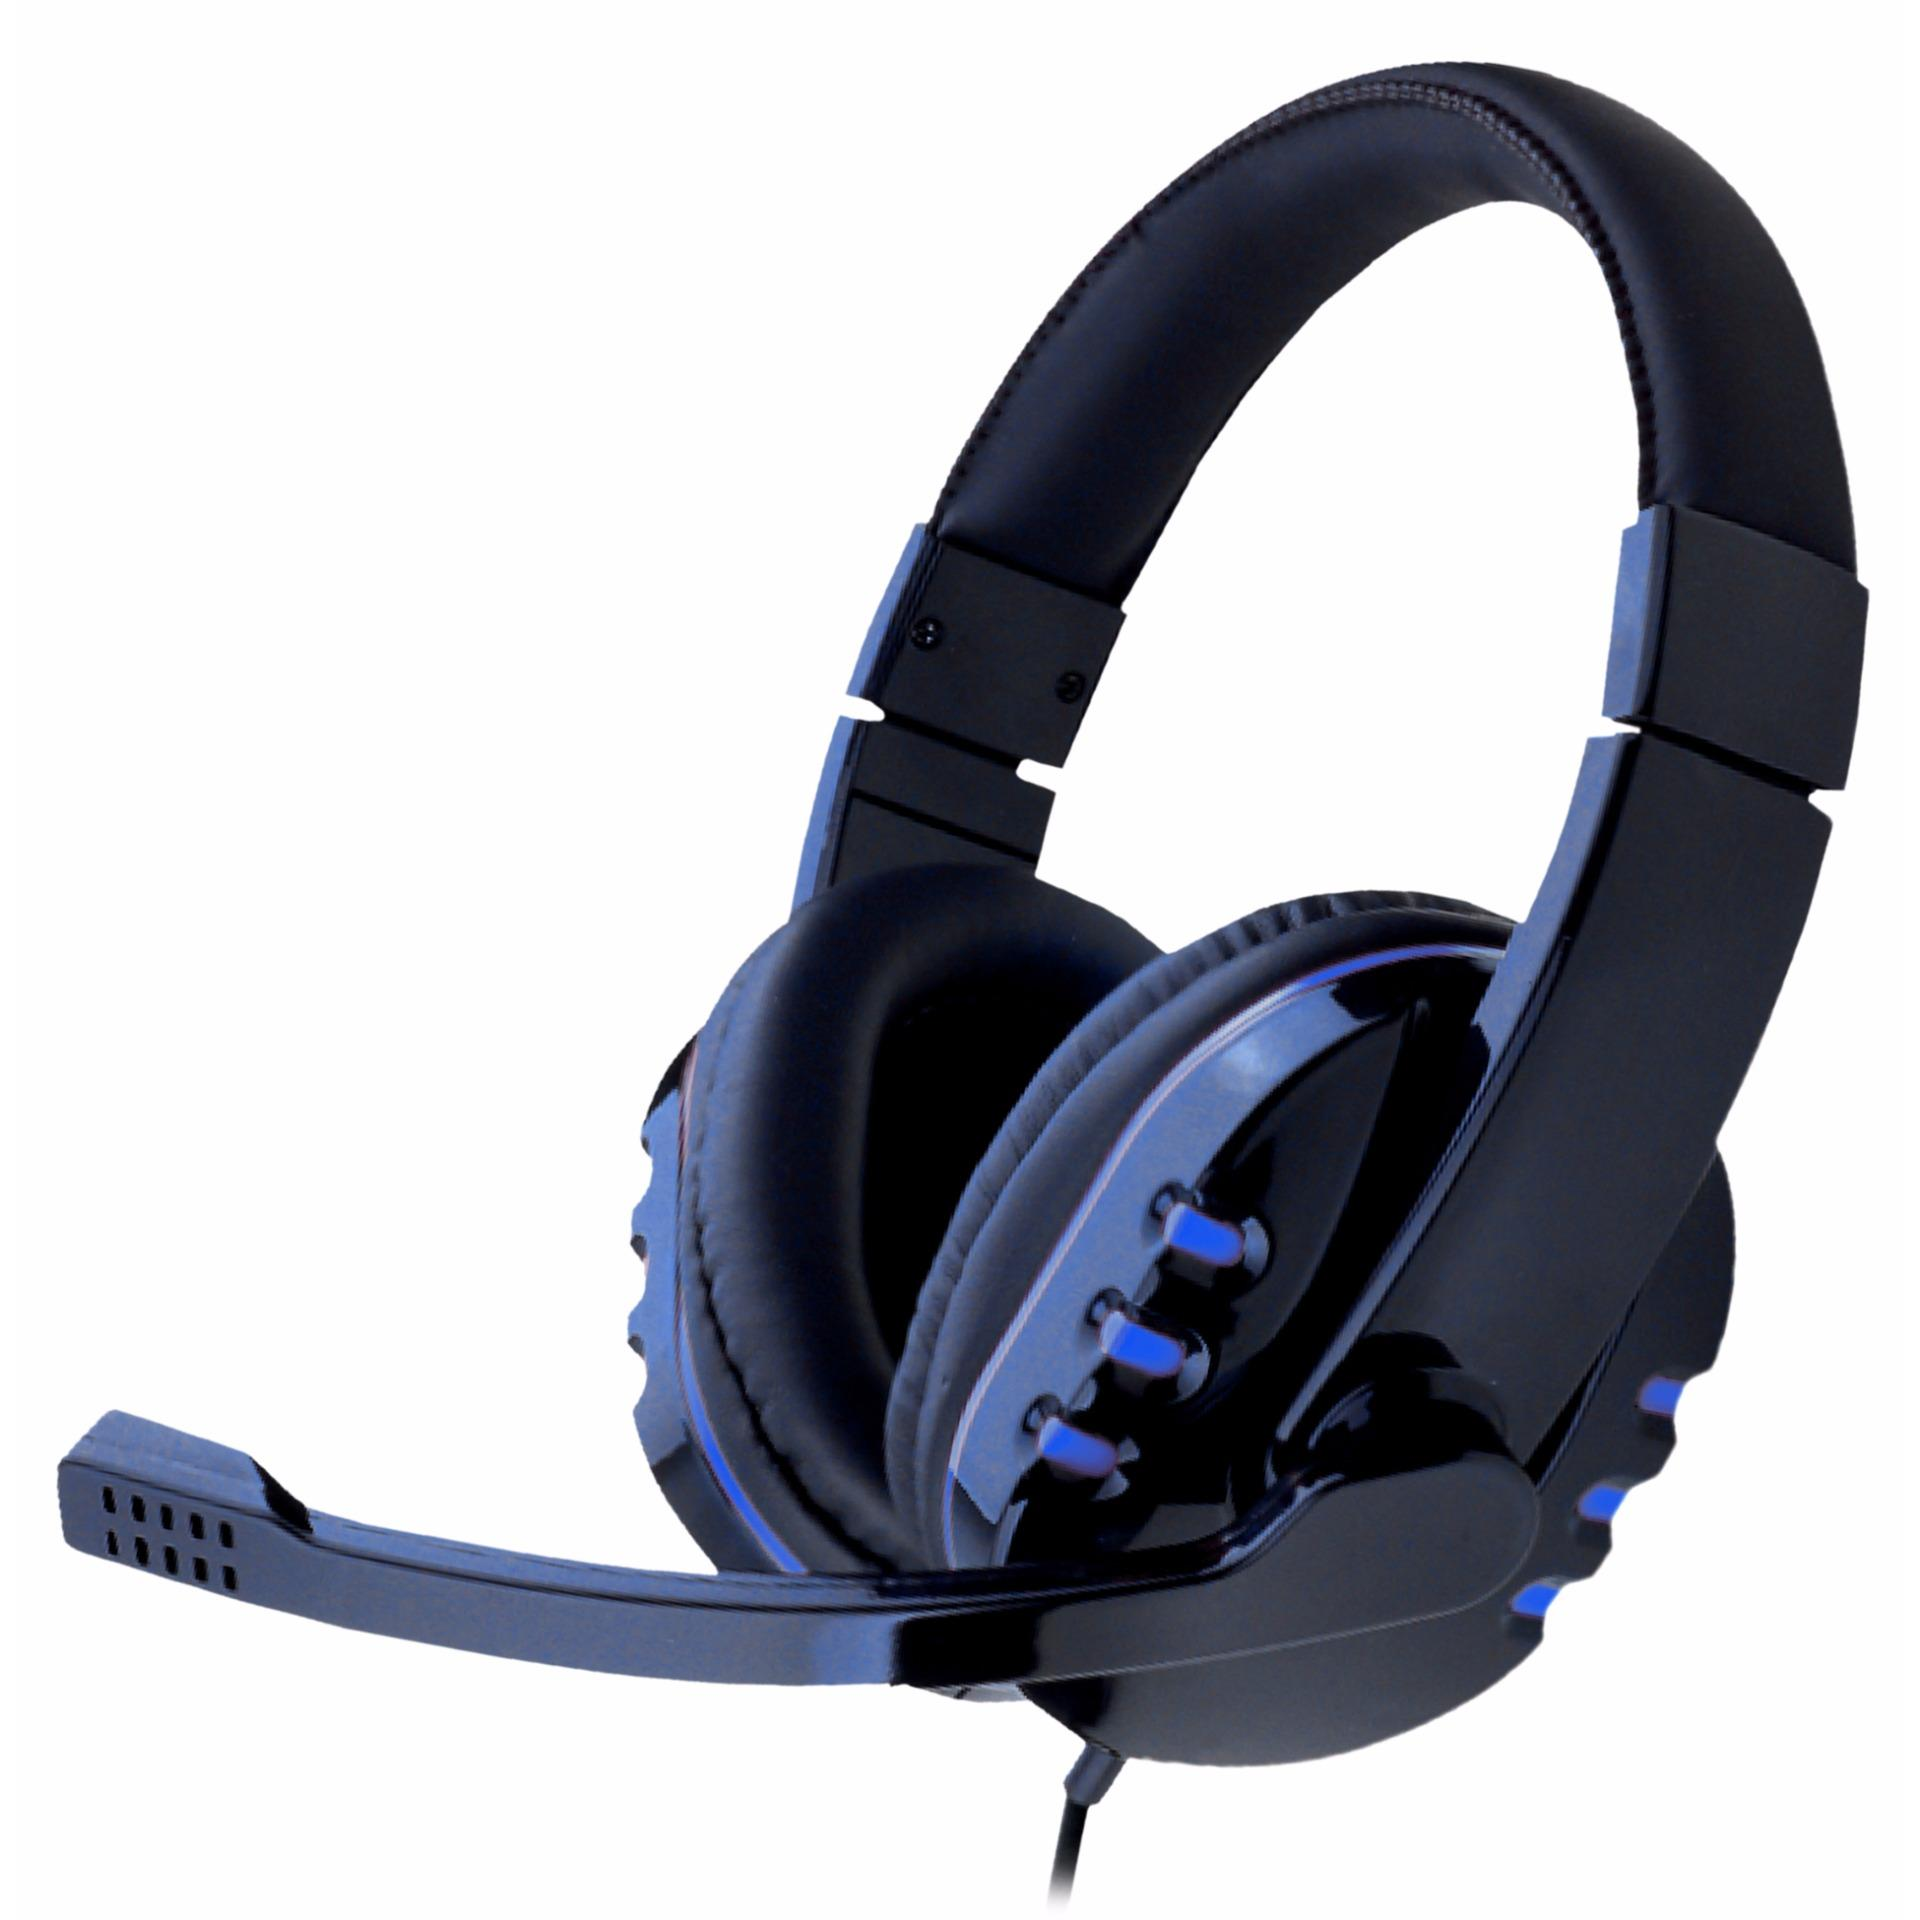 Toko Mediatech Gaming Headset Headphone Zeus Msh 016 Biru Mediatech